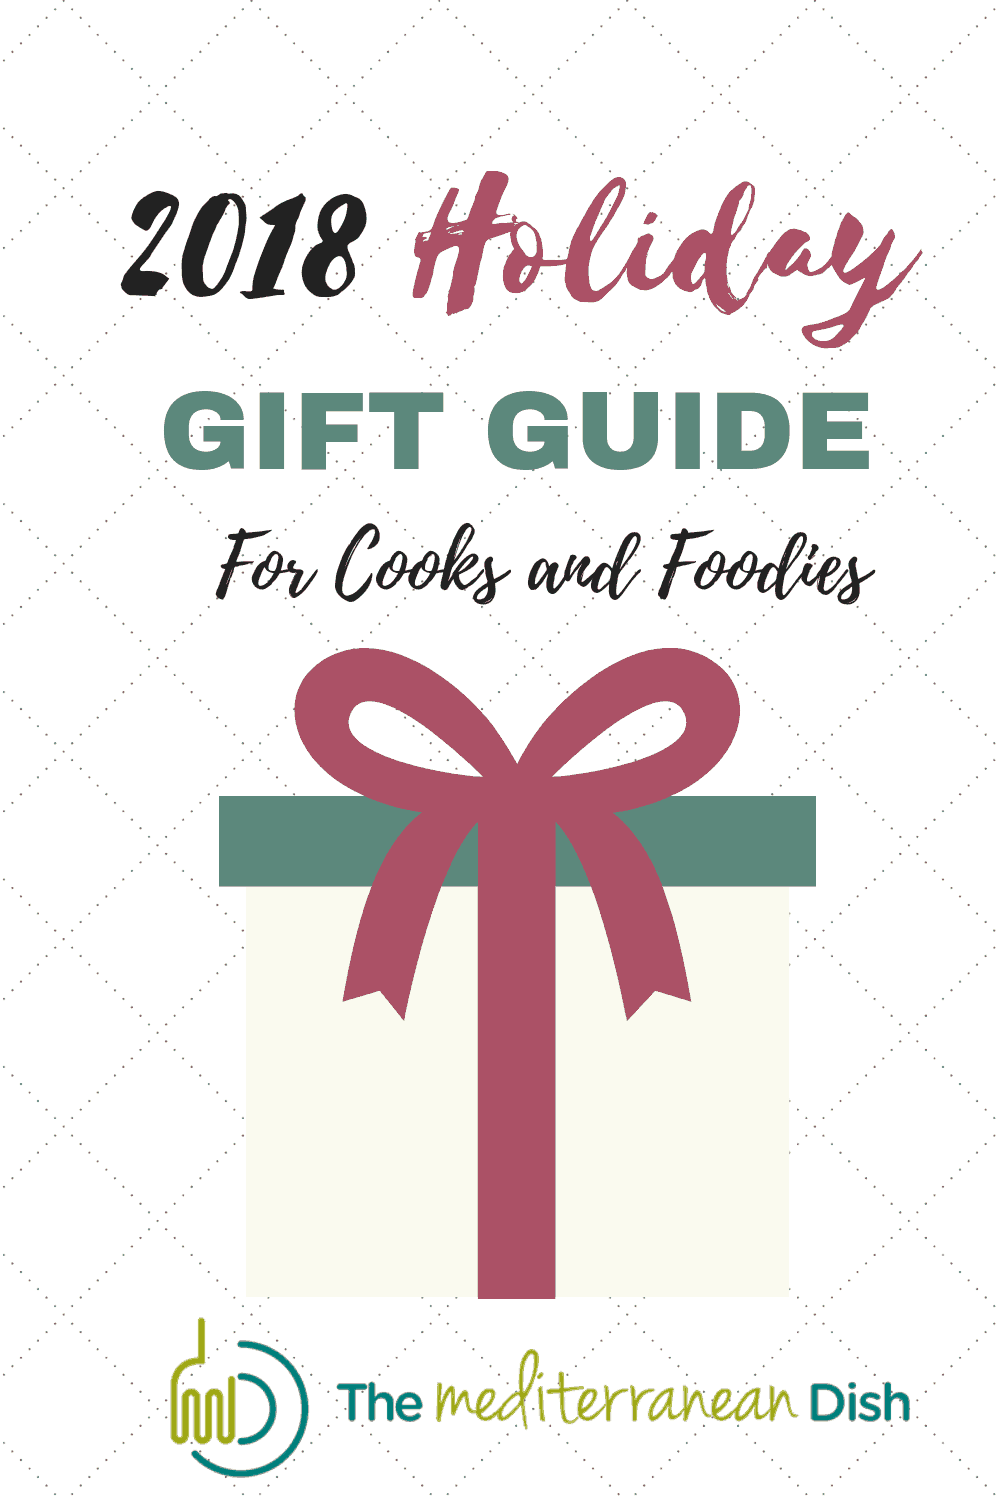 Holiday Gift Guide For Cooks and Foodies From The Mediterranean Dish